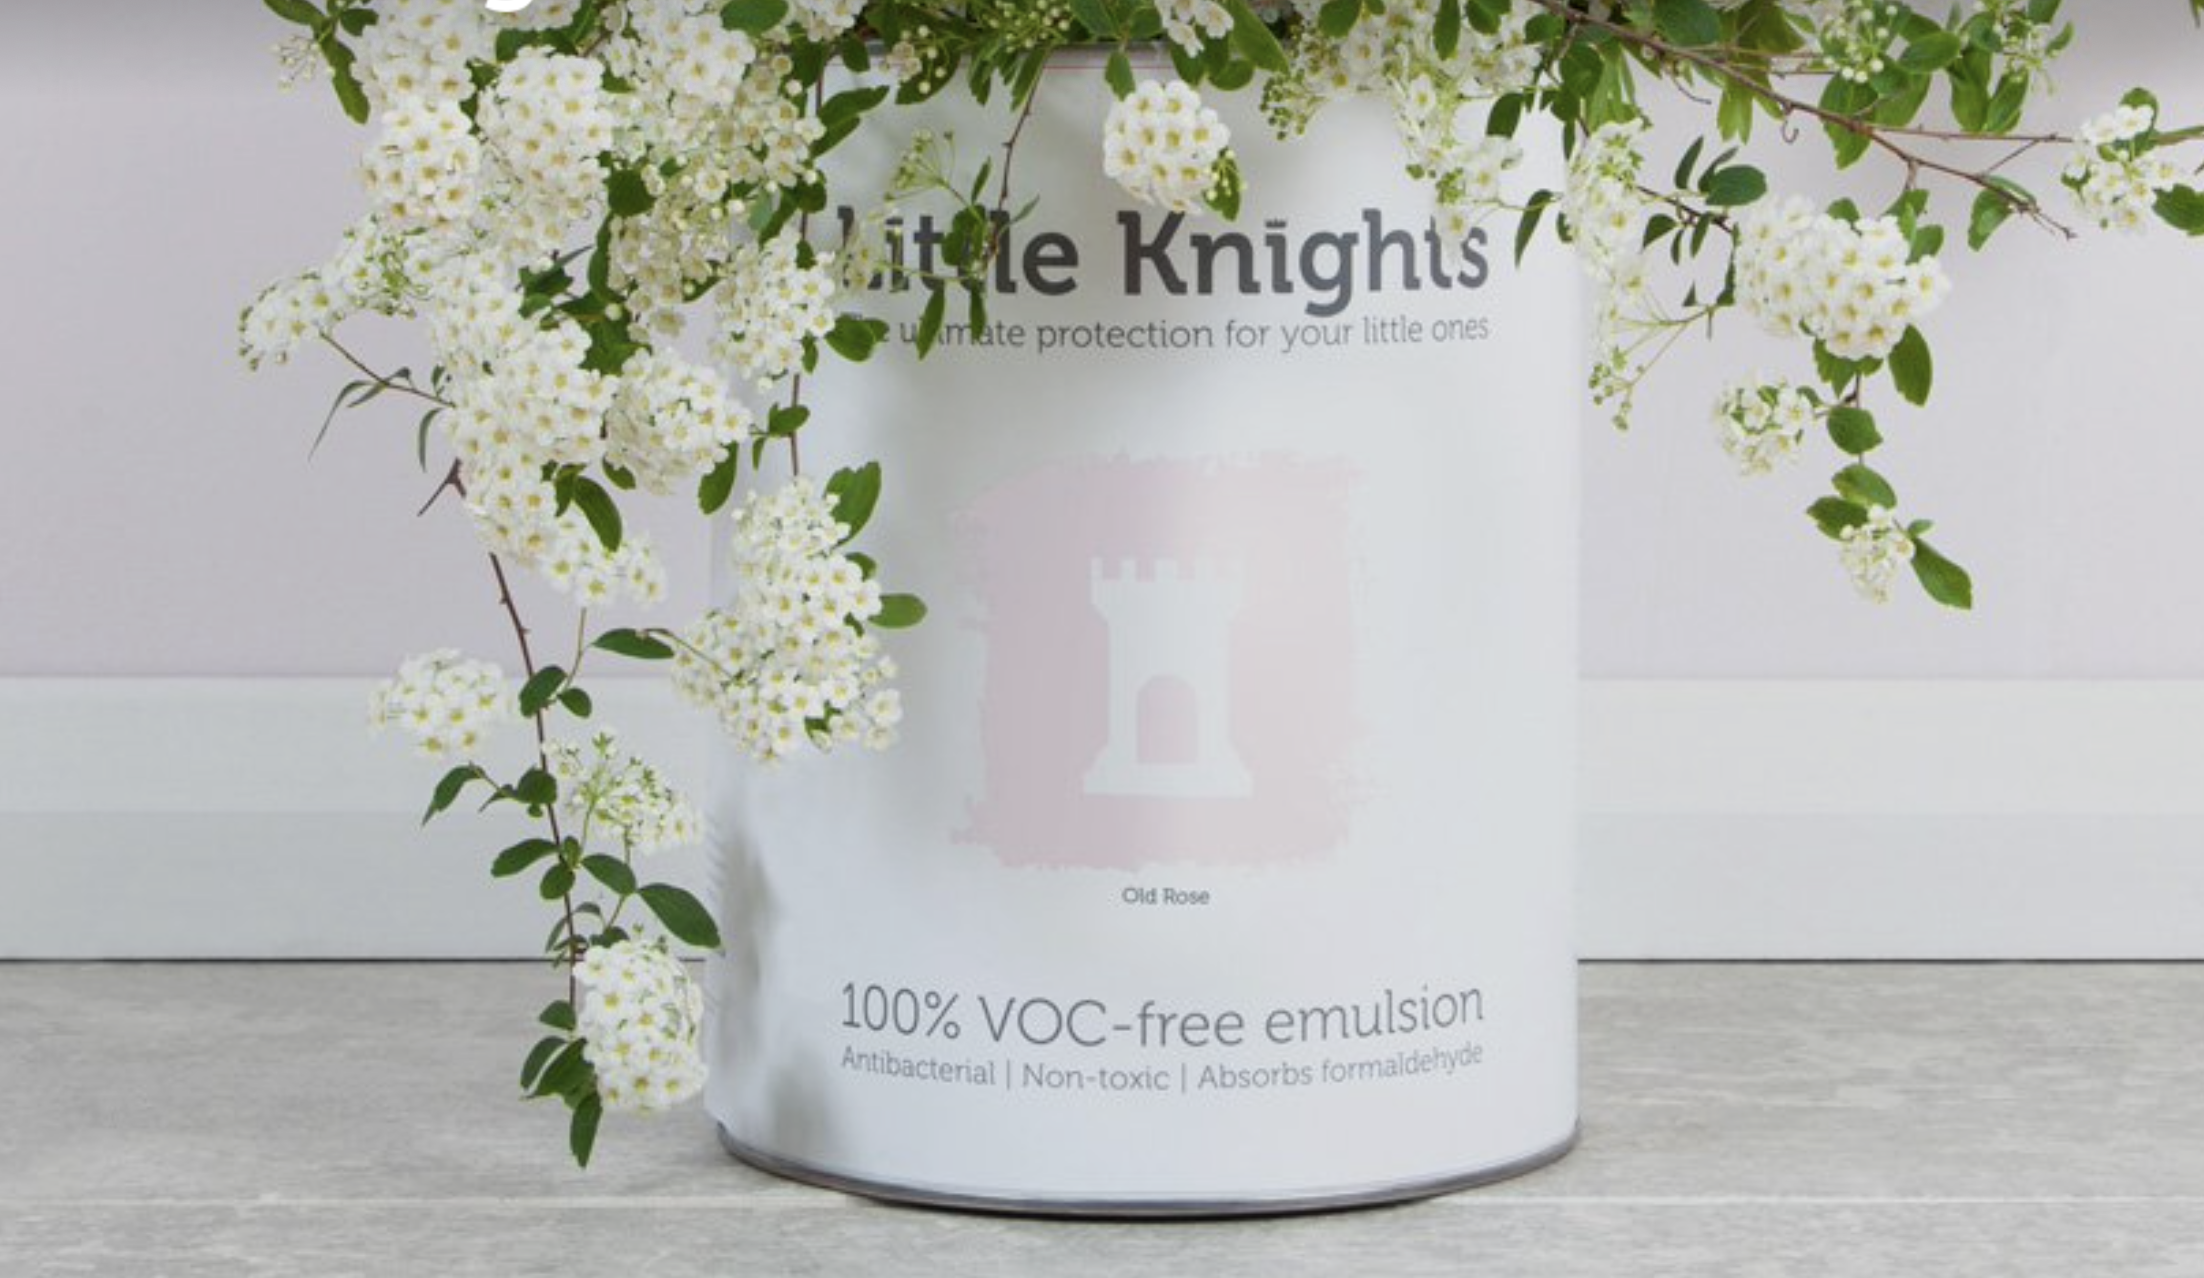 UK brand Little Knights makes paints with no VOCs or petrochemicals